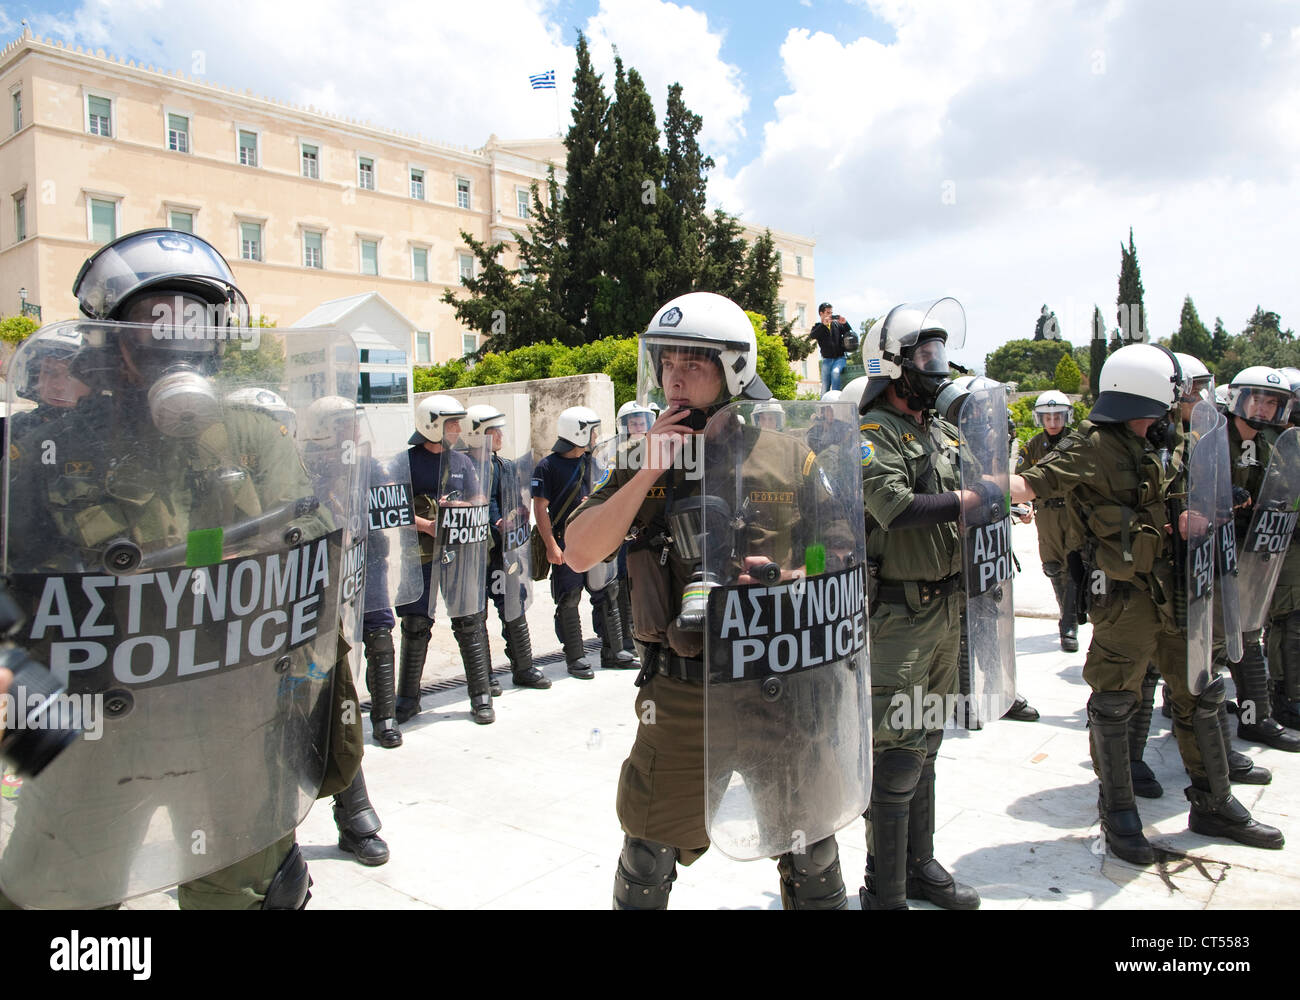 Greek riot police guarding the Parliament building in Syntagma Square, Athens, Greece. - Stock Image